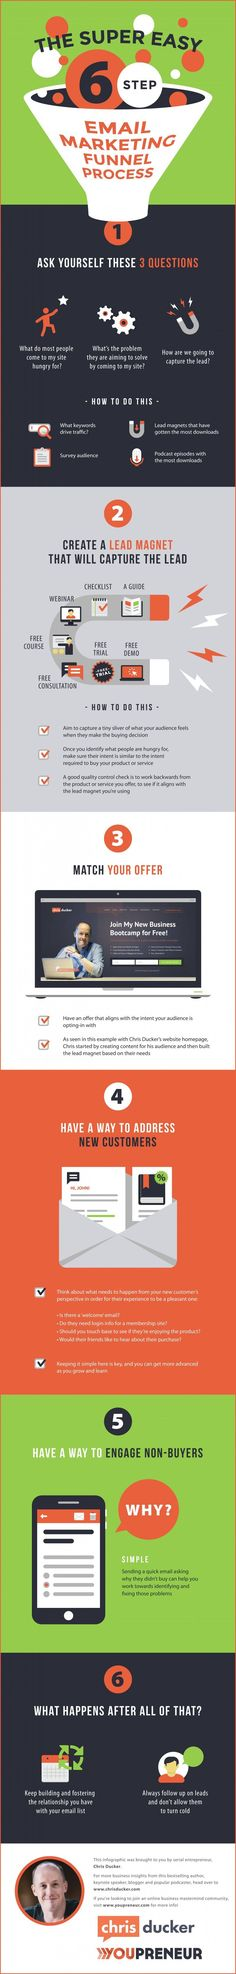 The Super Easy 6-Step Email Marketing Funnel #Infographic #EmailMarketing #Marketing